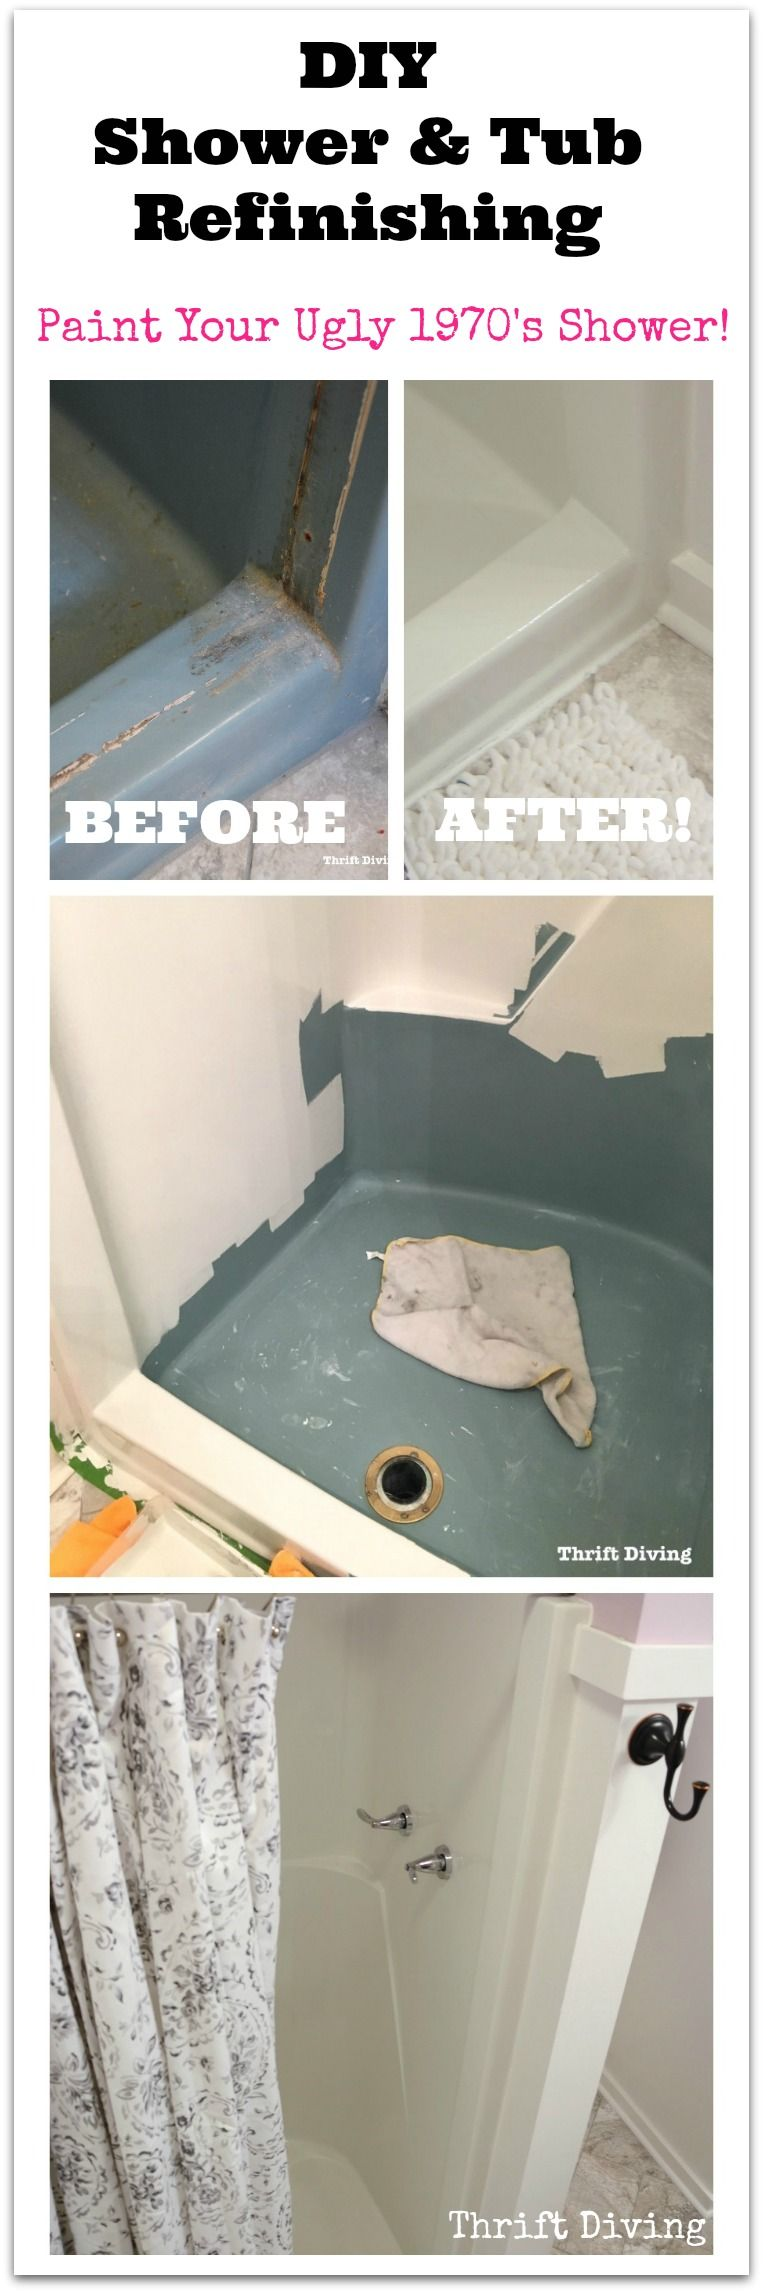 Refinish Complete Bath, Shower, other Fiberglass and Porcelain ...